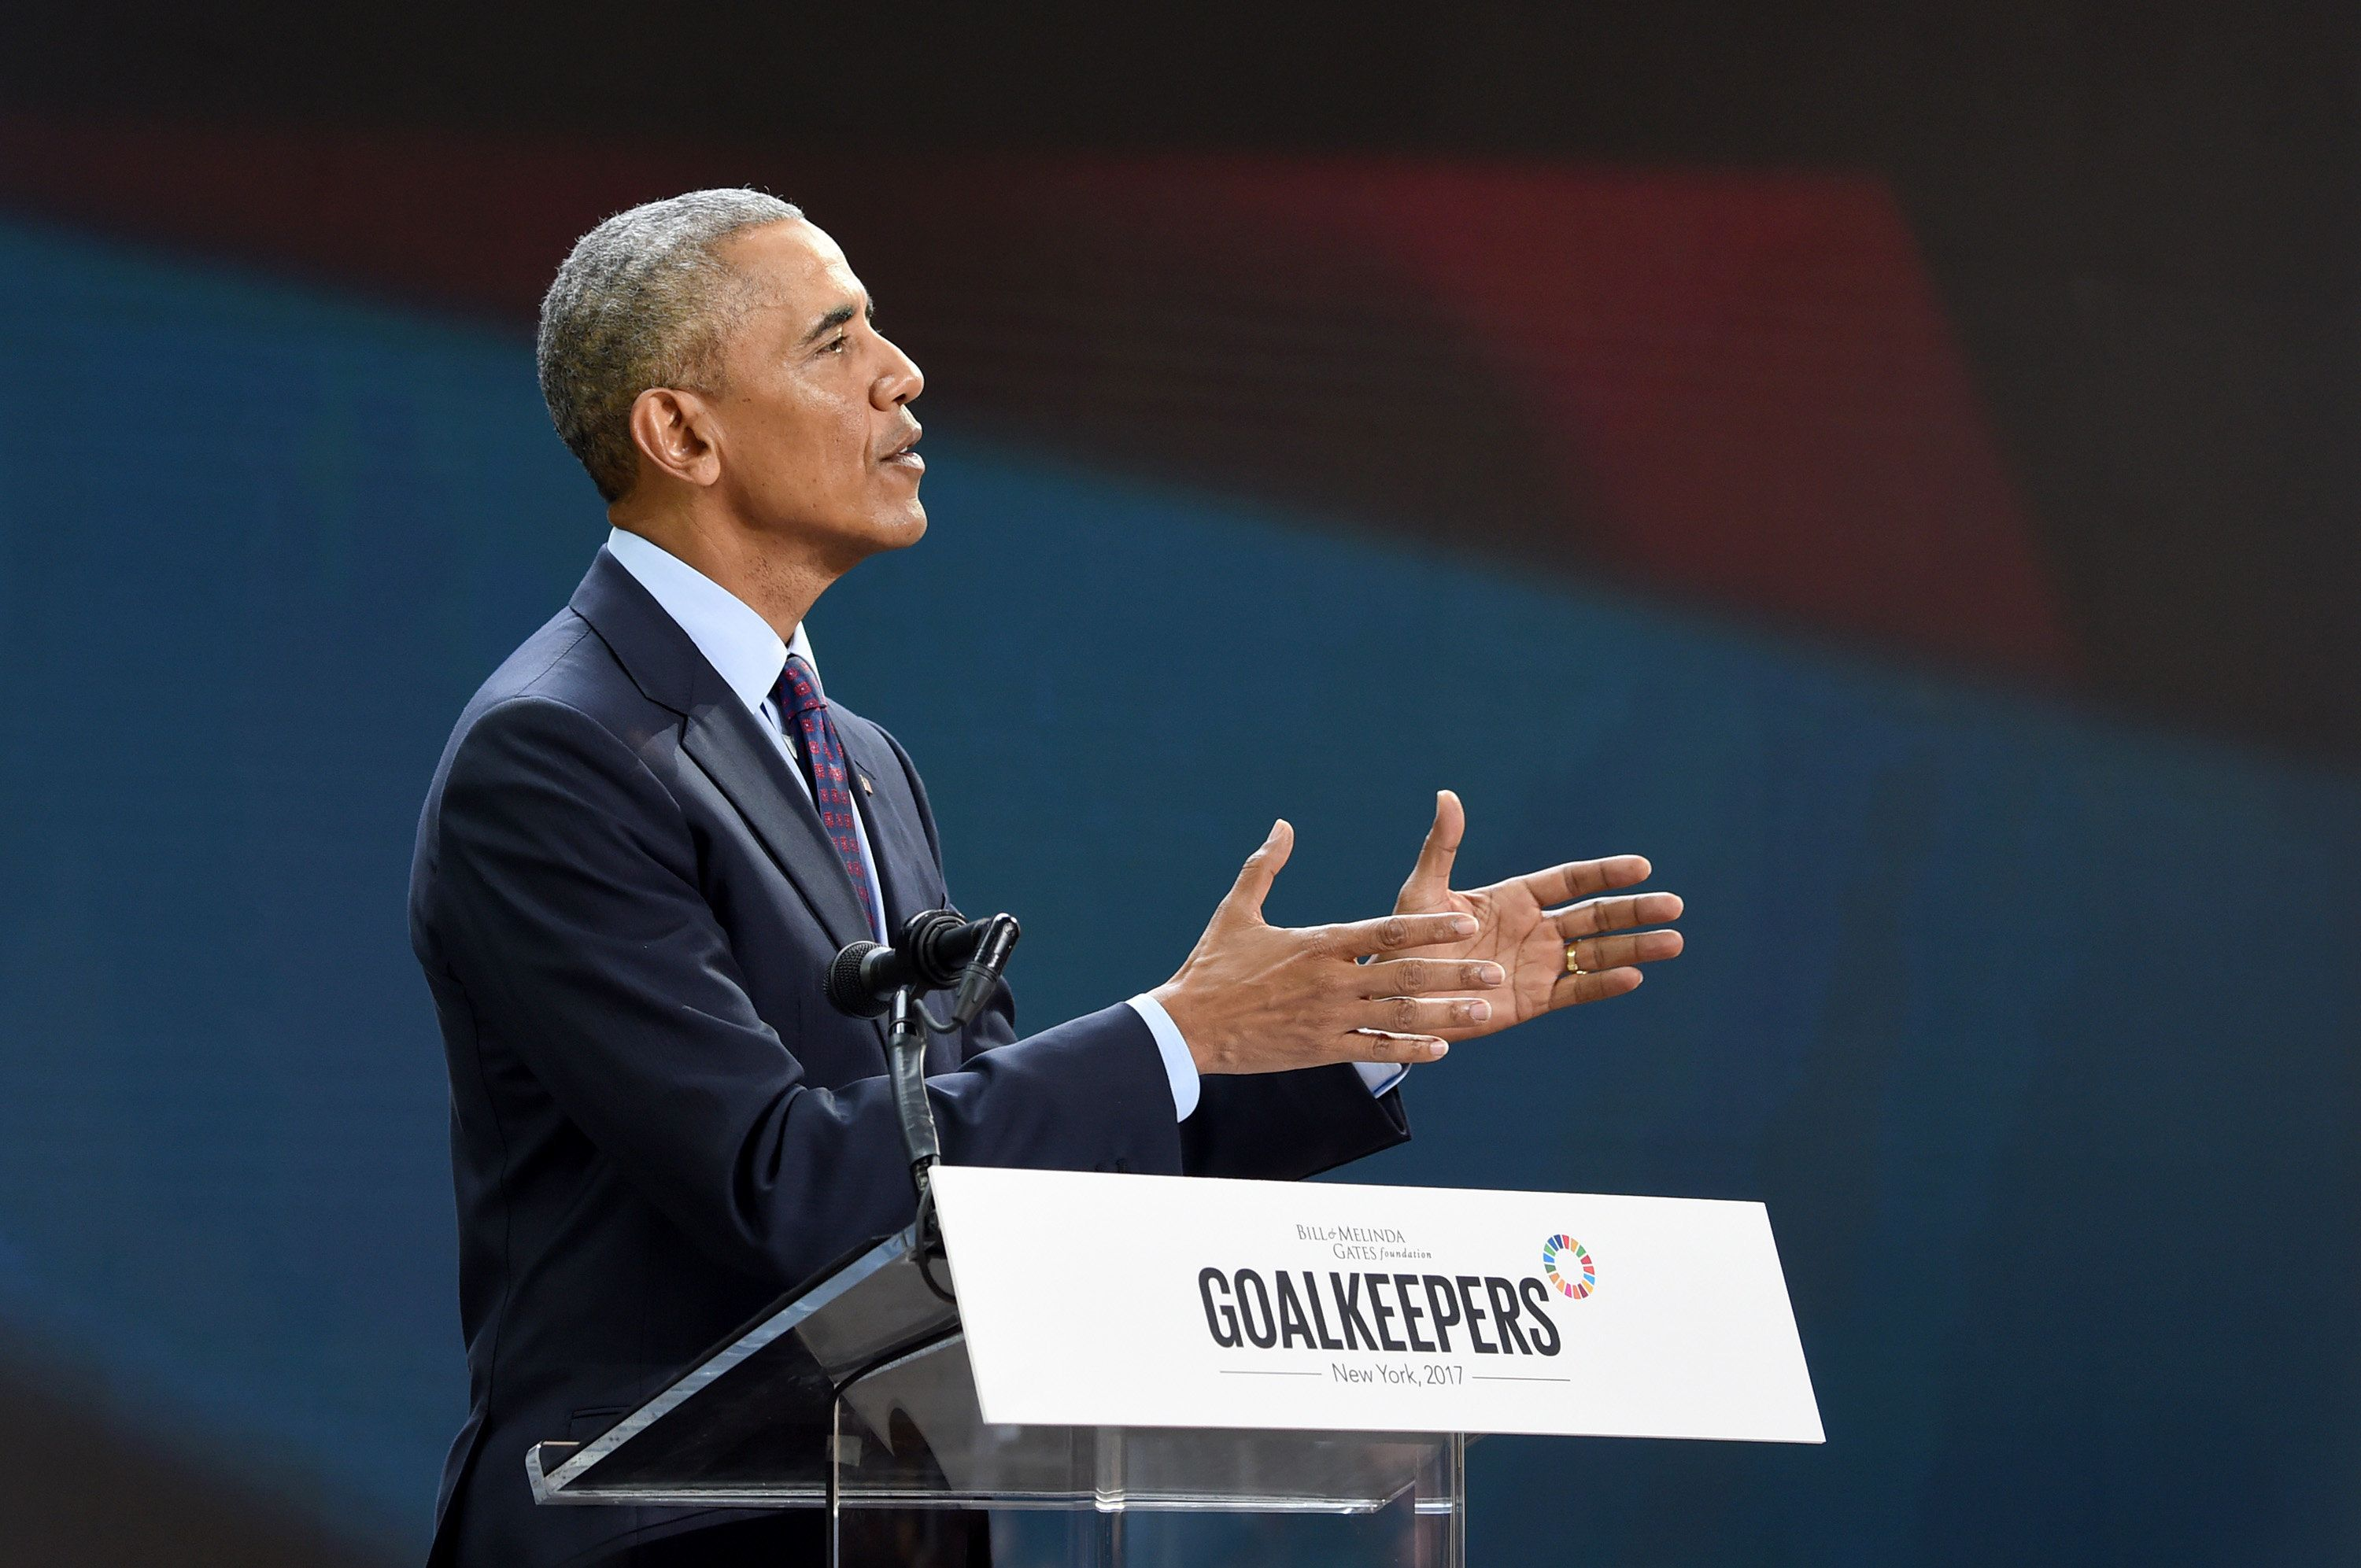 NEW YORK, NY - SEPTEMBER 20:  President Barack Obama speaks at Goalkeepers 2017, at Jazz at Lincoln Center on September 20, 2017 in New York City.  Goalkeepers is organized by the Bill & Melinda Gates Foundation to highlight progress against global poverty and disease, showcase solutions to help advance the Sustainable Development Goals (or Global Goals) and foster bold leadership to help accelerate the path to a more prosperous, healthy and just future.  (Photo by Jamie McCarthy/Getty Images for Bill & Melinda Gates Foundation)